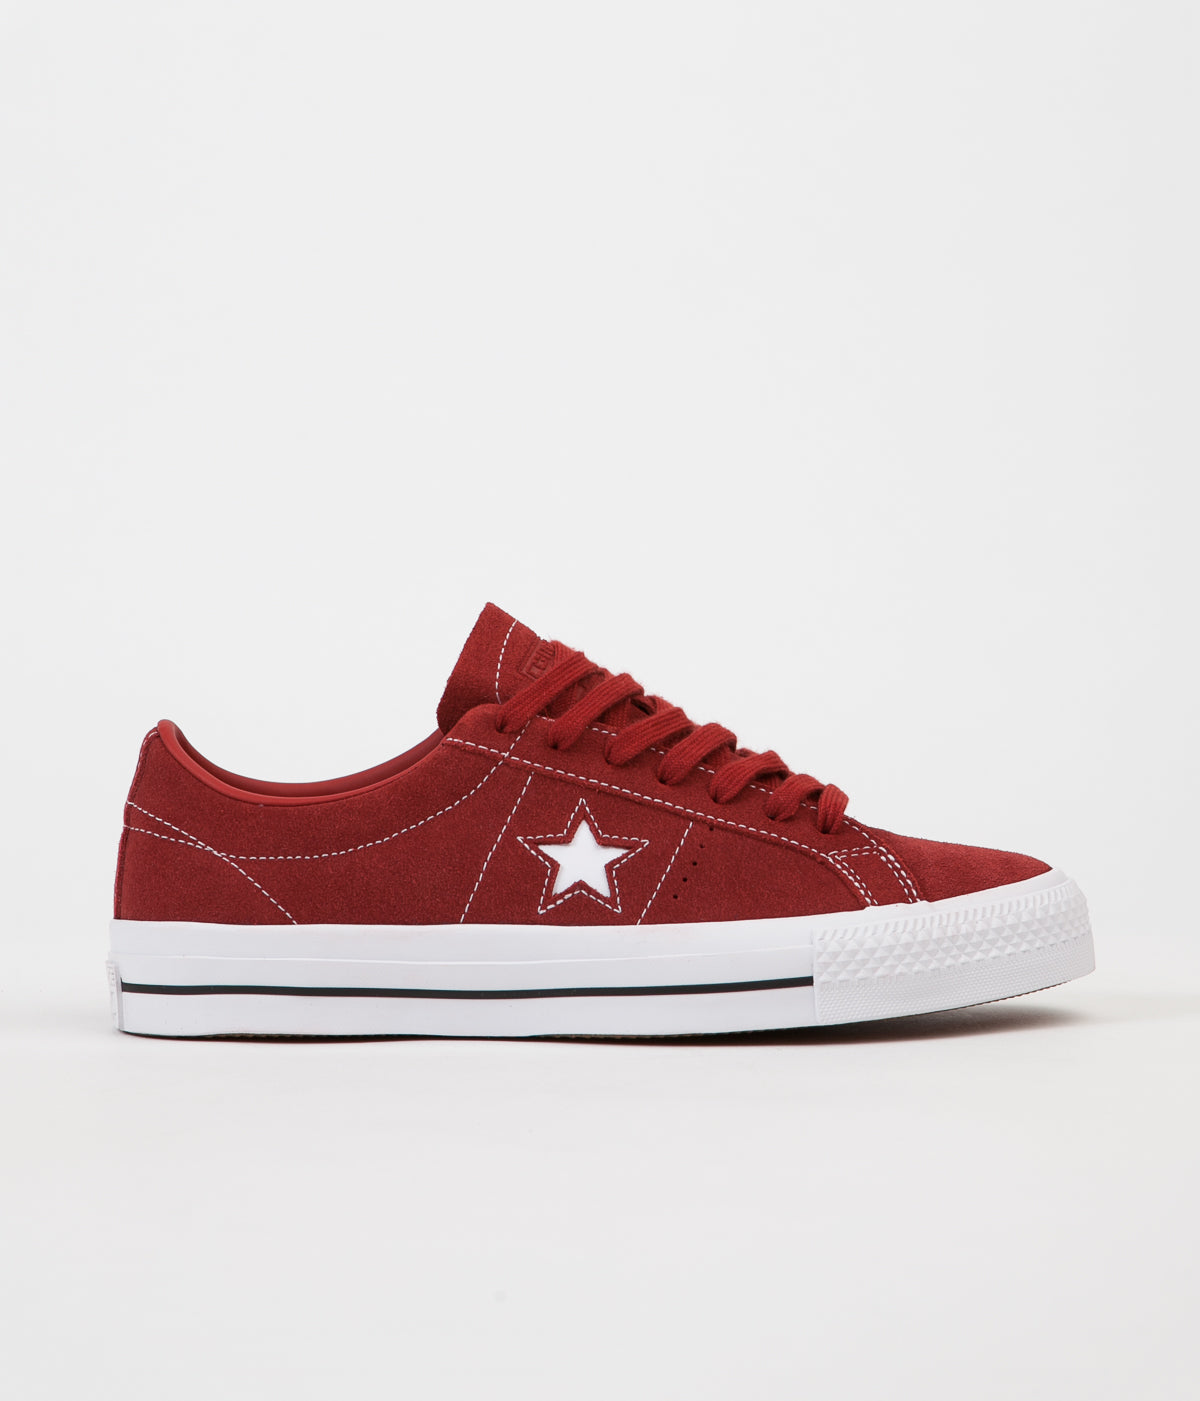 f57a840dccb3 ... Converse One Star Pro Ox Shoes - Terra Red   Terra Red ...